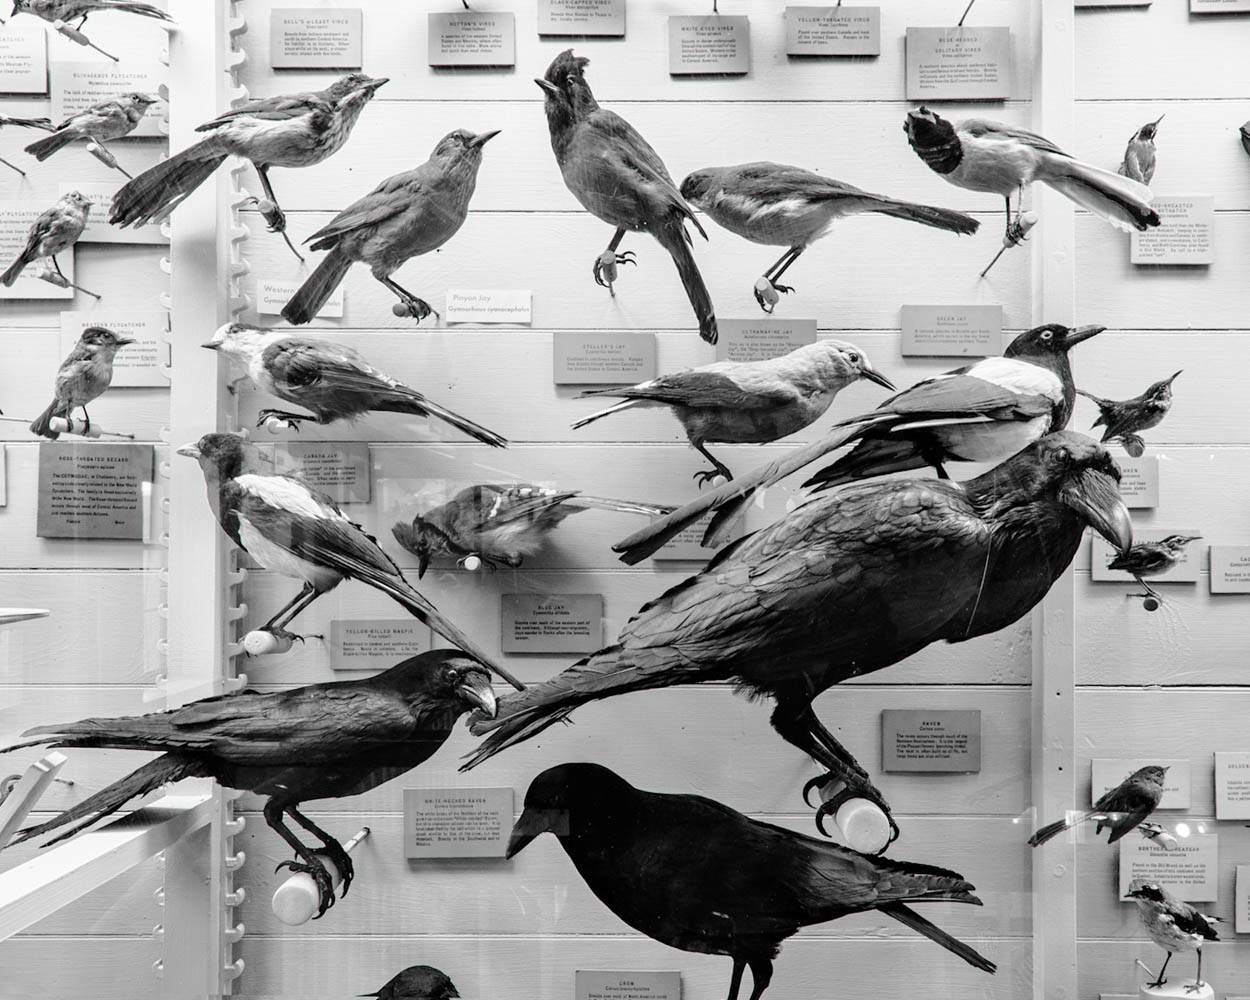 North American Birds Exhibit, 2010